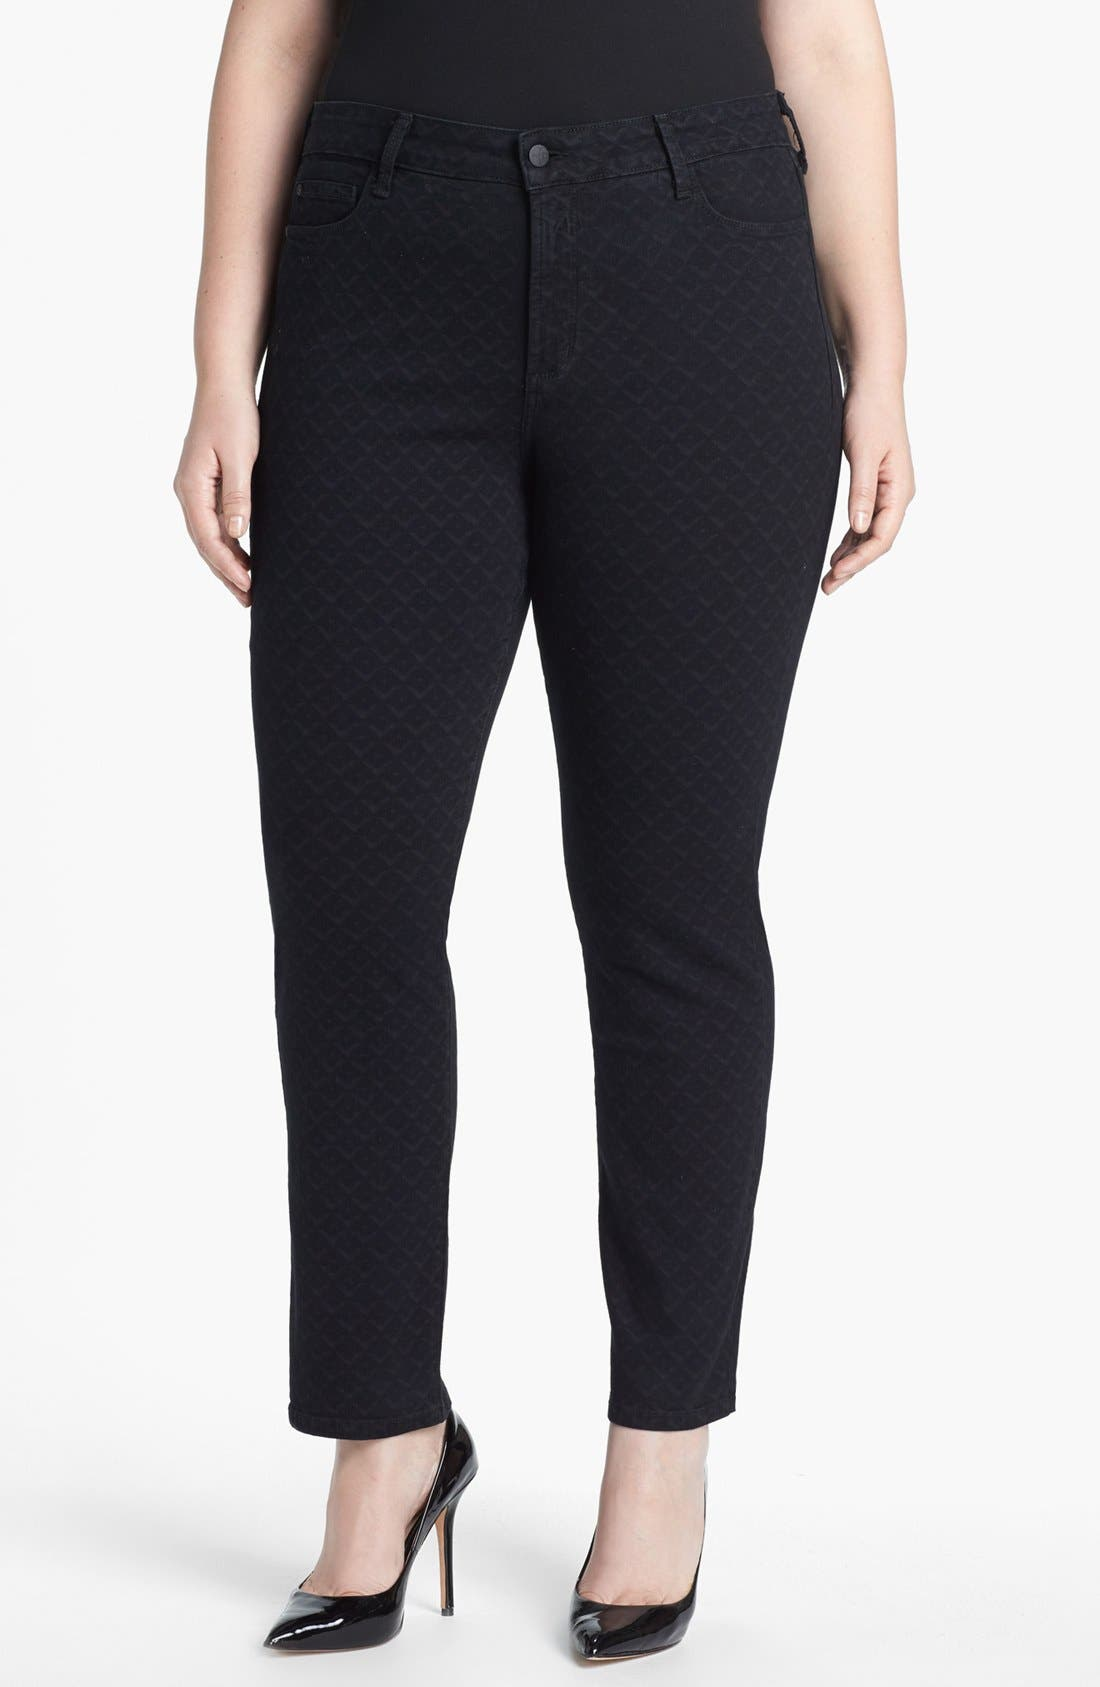 Alternate Image 1 Selected - NYDJ 'Sheri' Print Stretch Skinny Jeans (Plus Size)